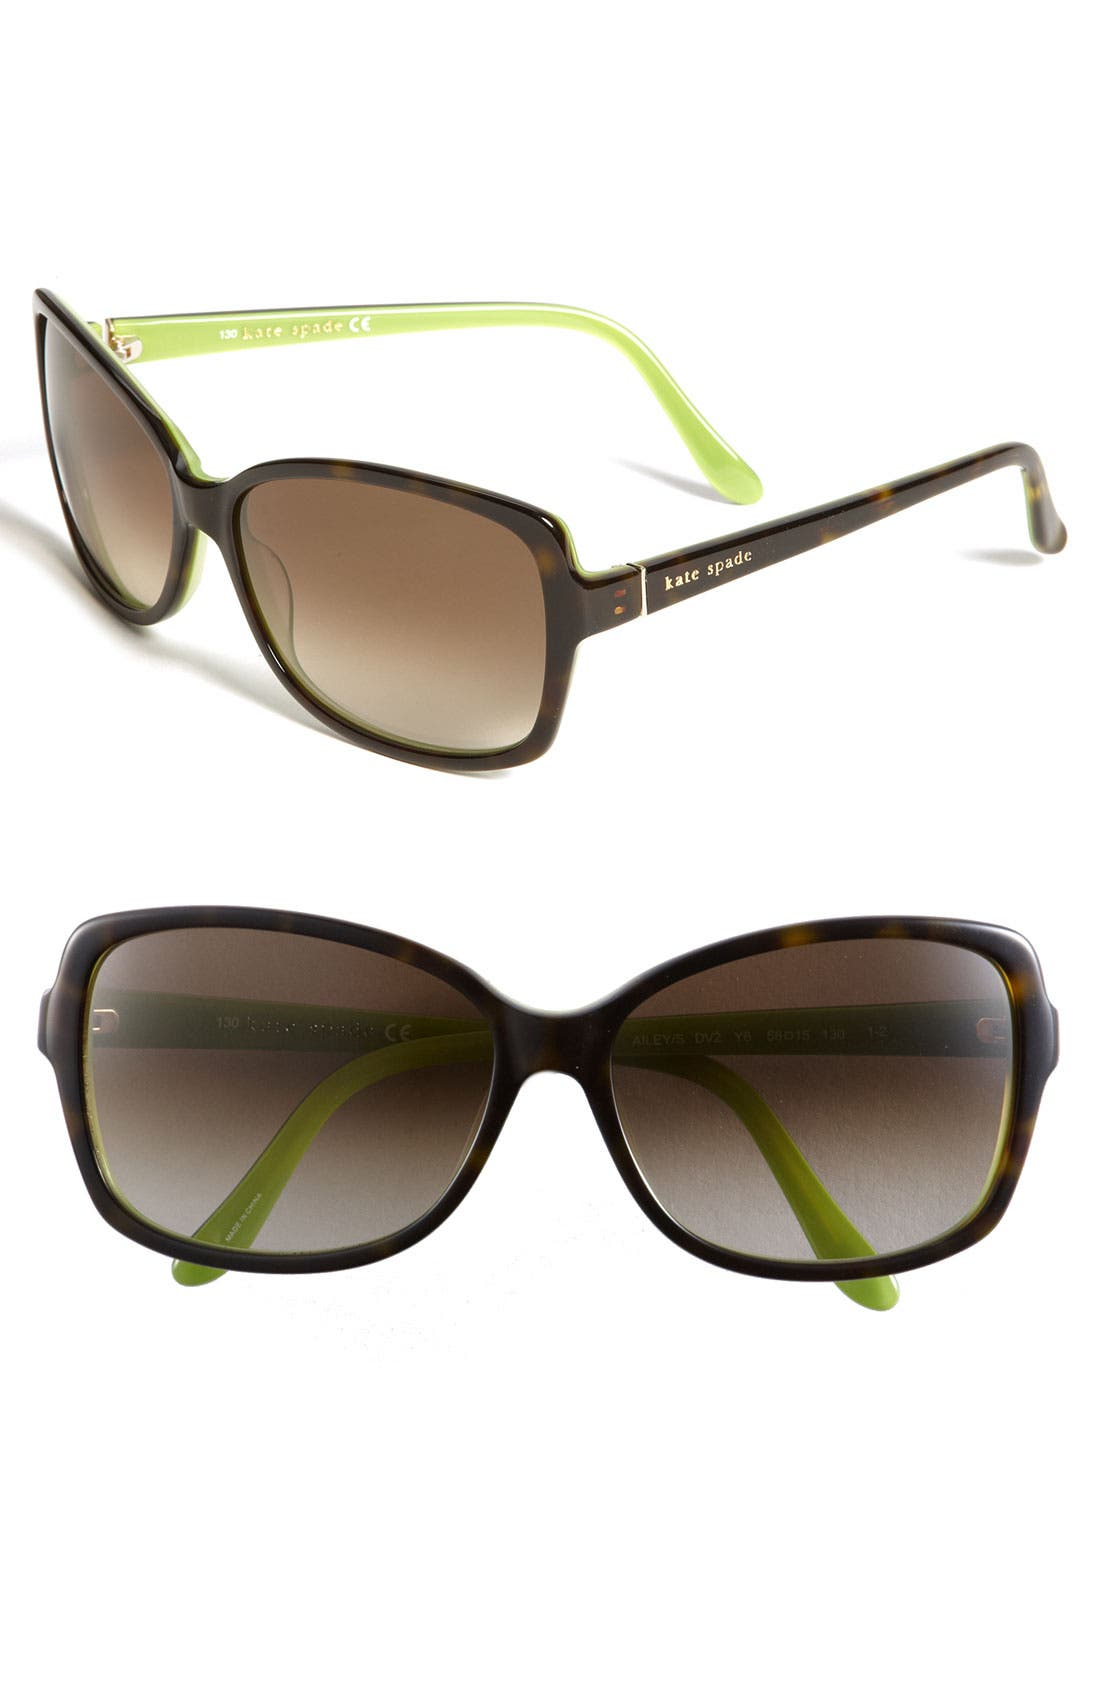 Main Image - kate spade new york ailey 58mm two-tone sunglasses